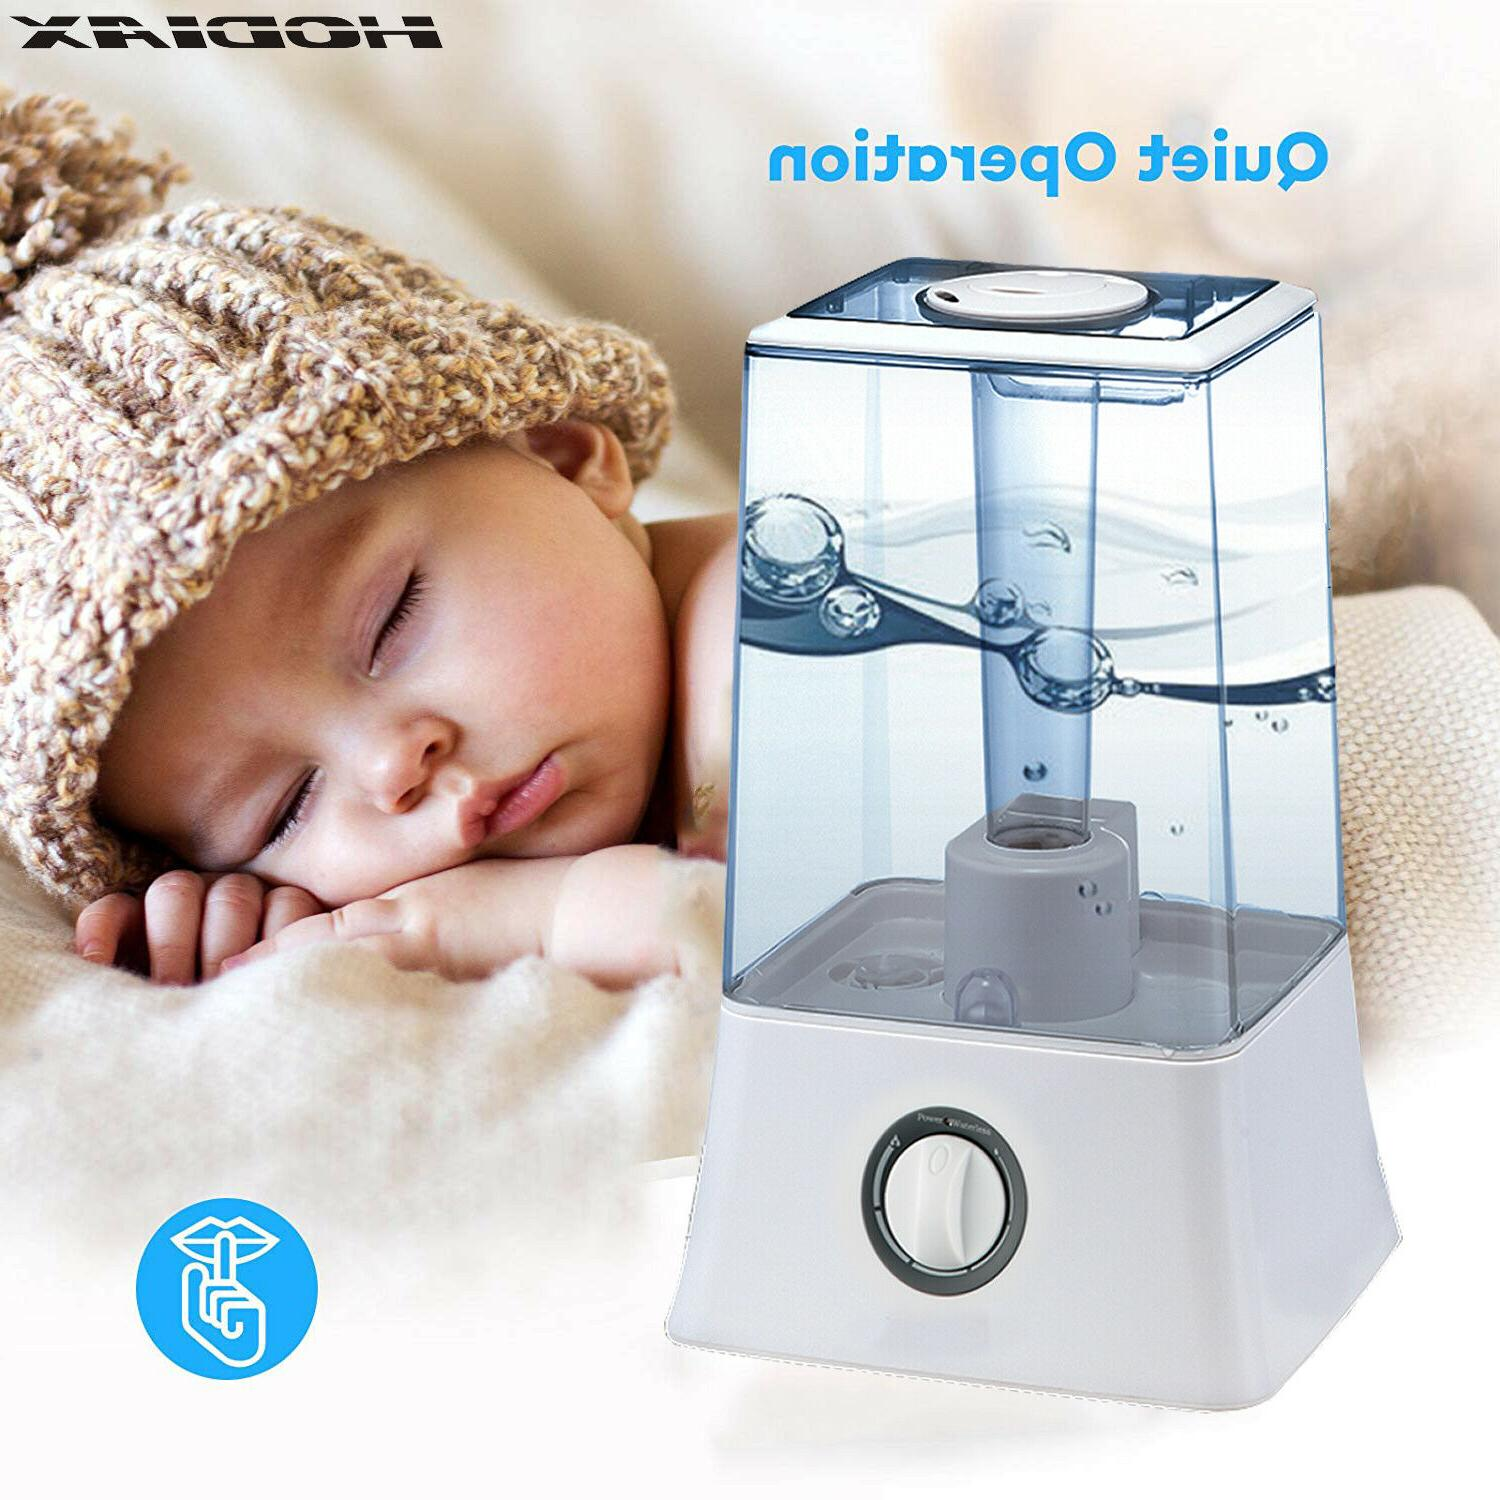 4.5L Humidifier Cool Air Purifier Humidifie For All